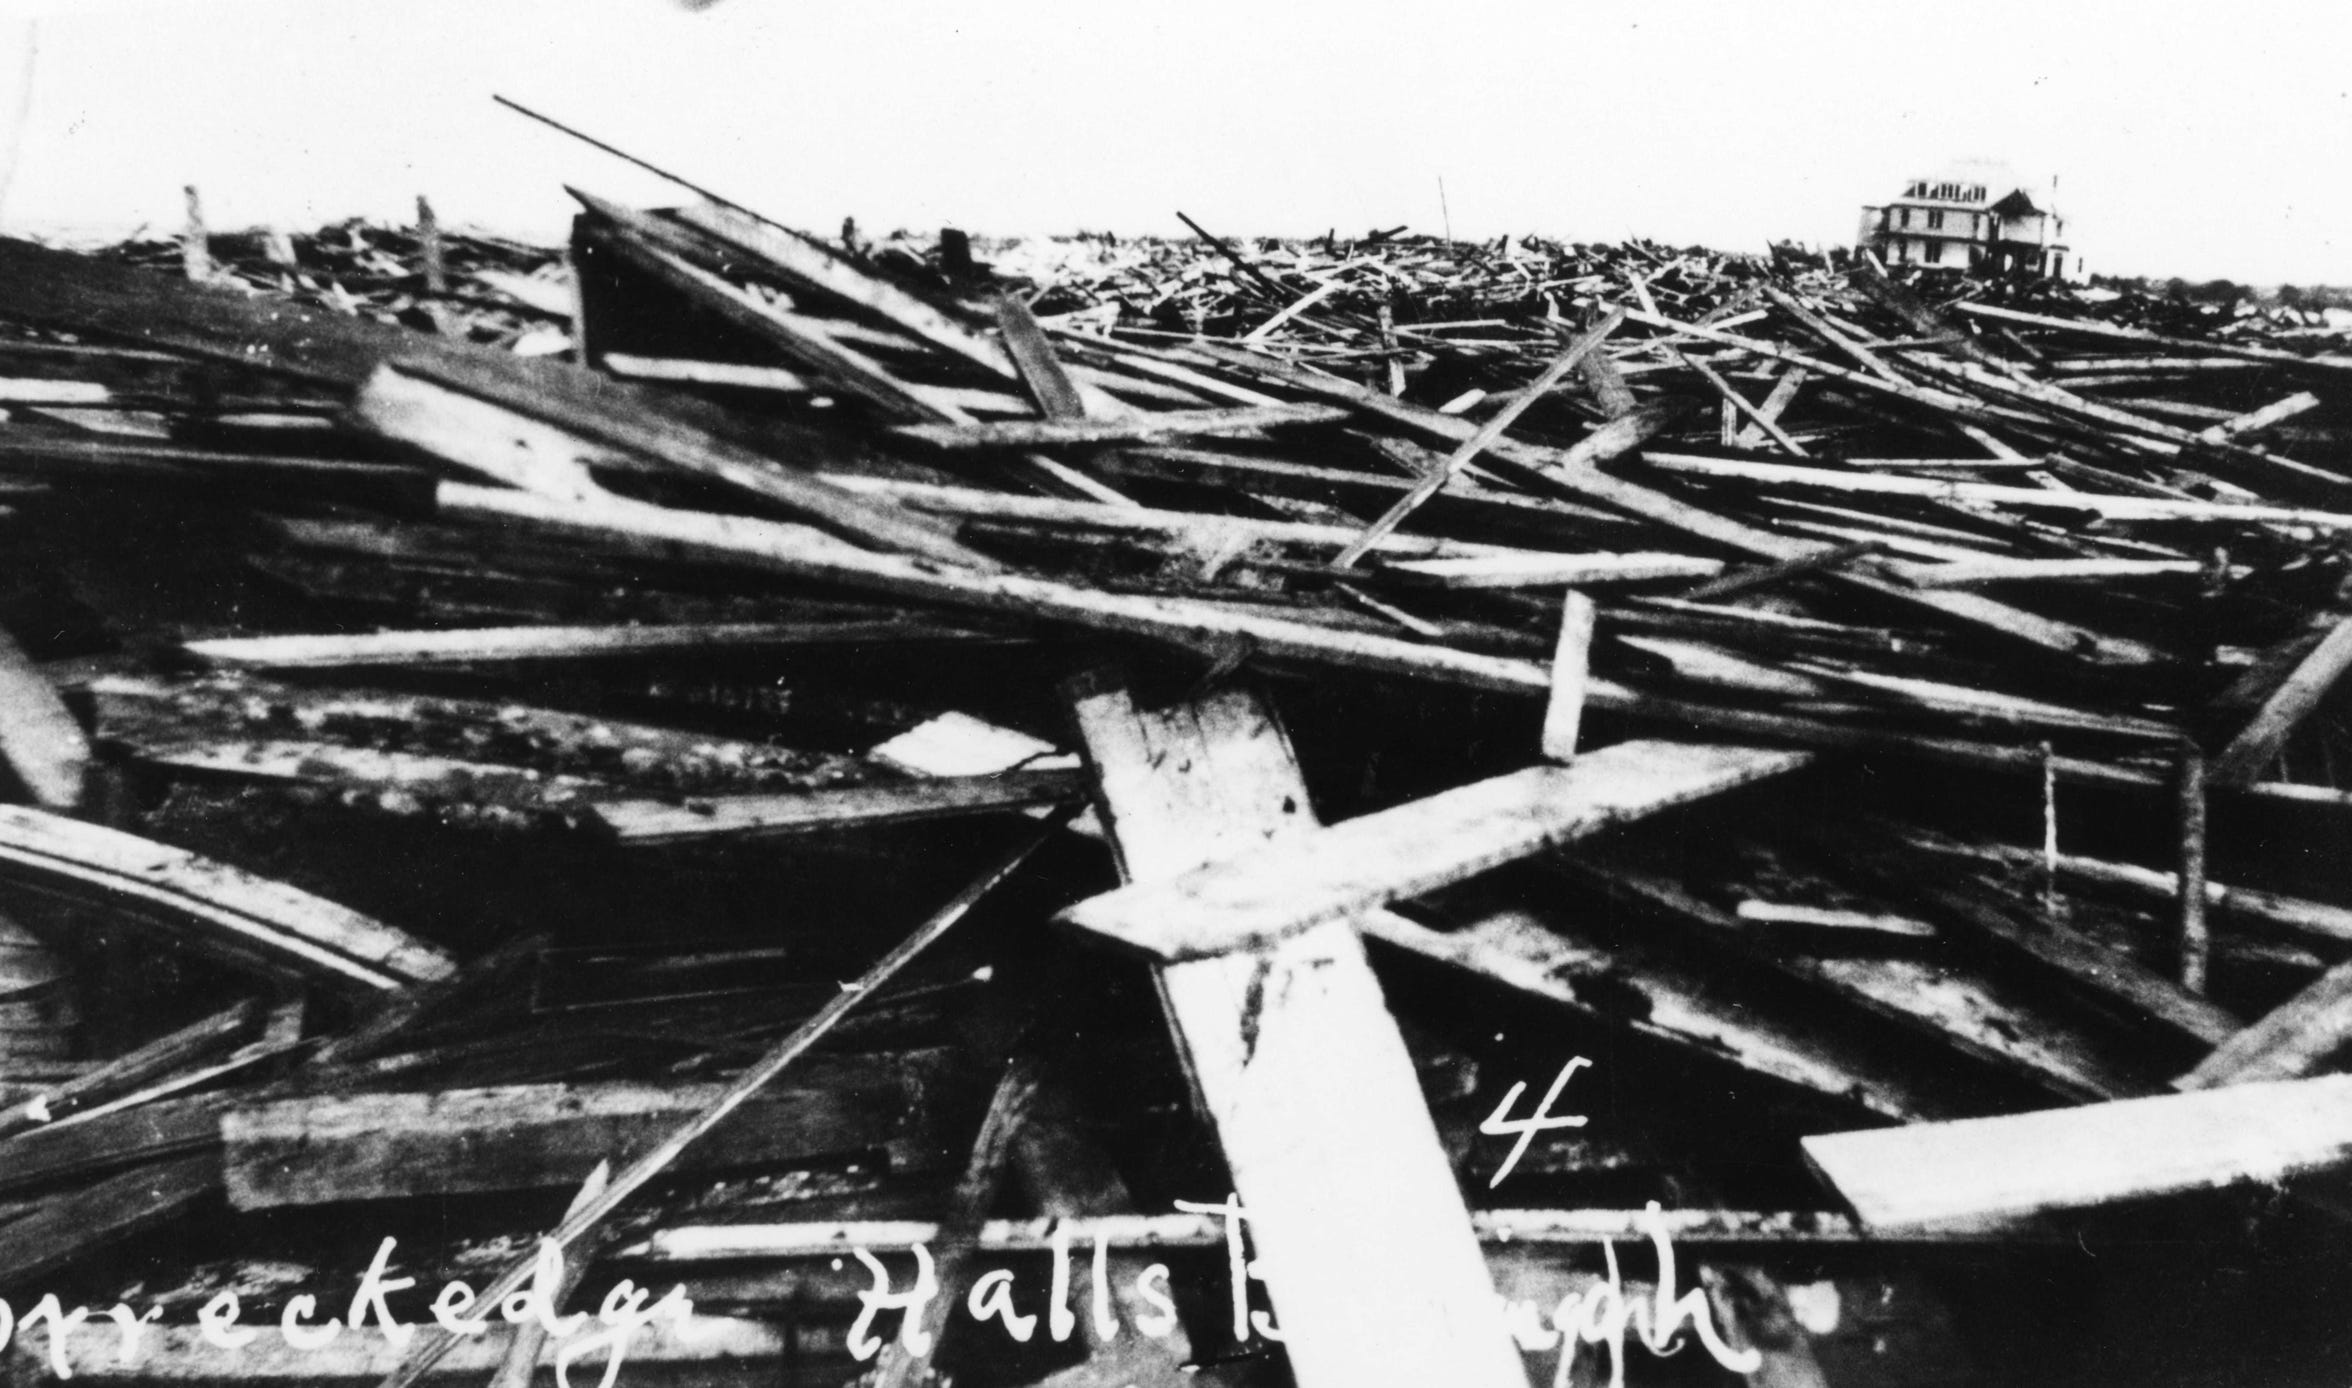 """The wreckage from the 1919 hurricane was piled at the edge of Hall's Bayou. In the distance is Spohn Sanitarium on North Beach. Hall's Bayou was eventually dredged to create the entrance to the Port of Corpus Christi. Photo from """"1919: The Storm - A Narrative and Photographic History"""" by Murphy Givens and Jim Moloney and provided courtesy of the authors."""